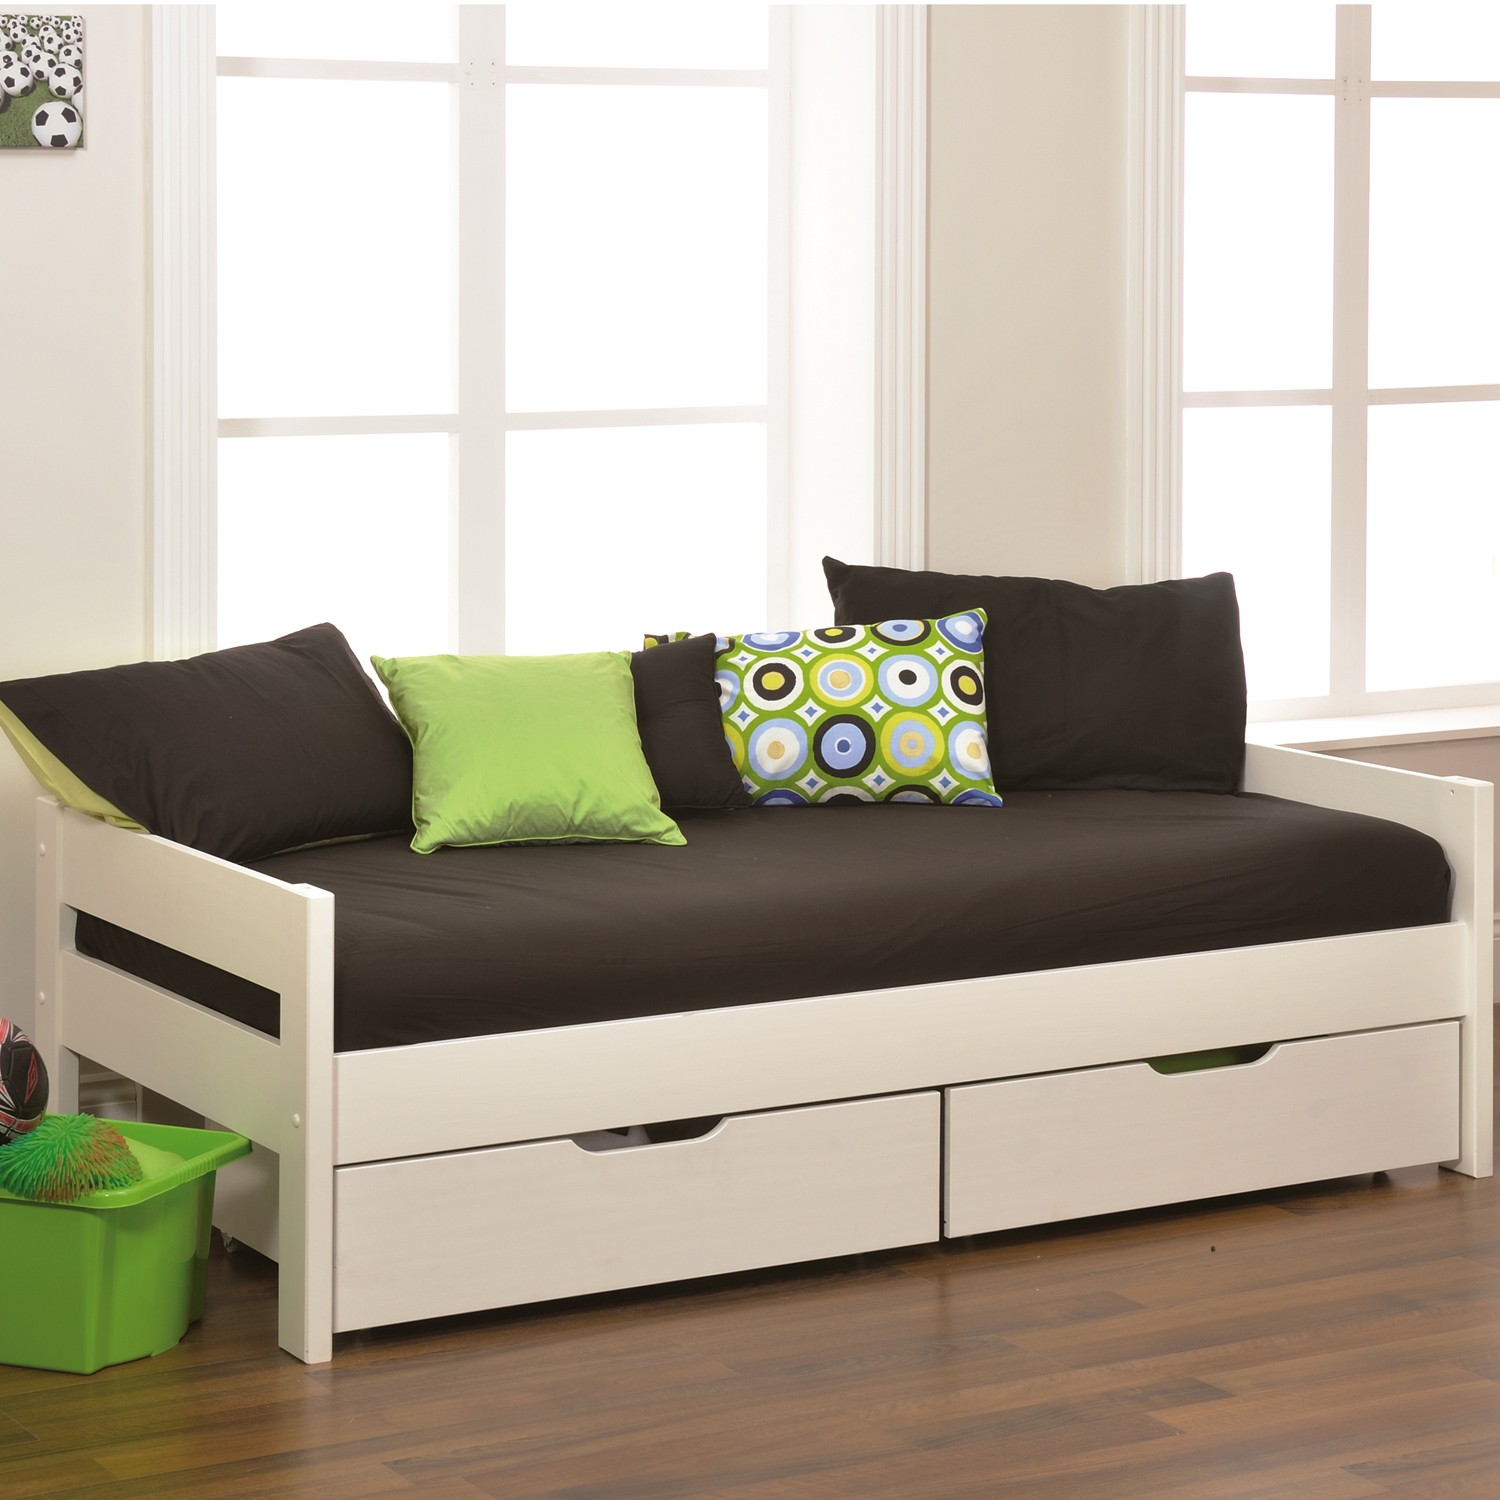 Excellent daybed with storage for small bedroom design with full size daybed with storage